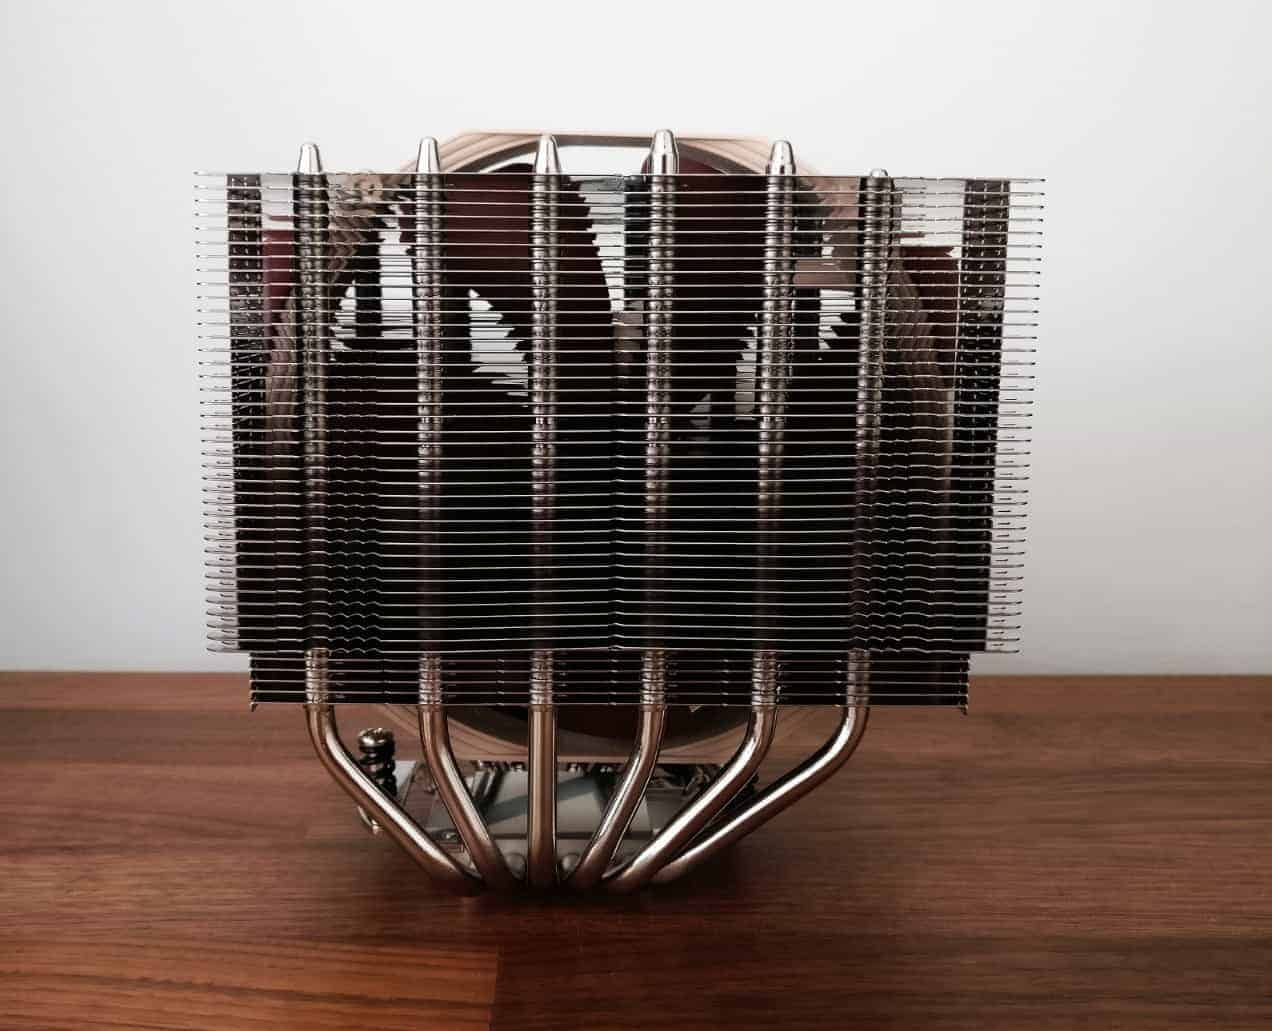 Noctua-DS15-13 Noctua NH-D15S Review